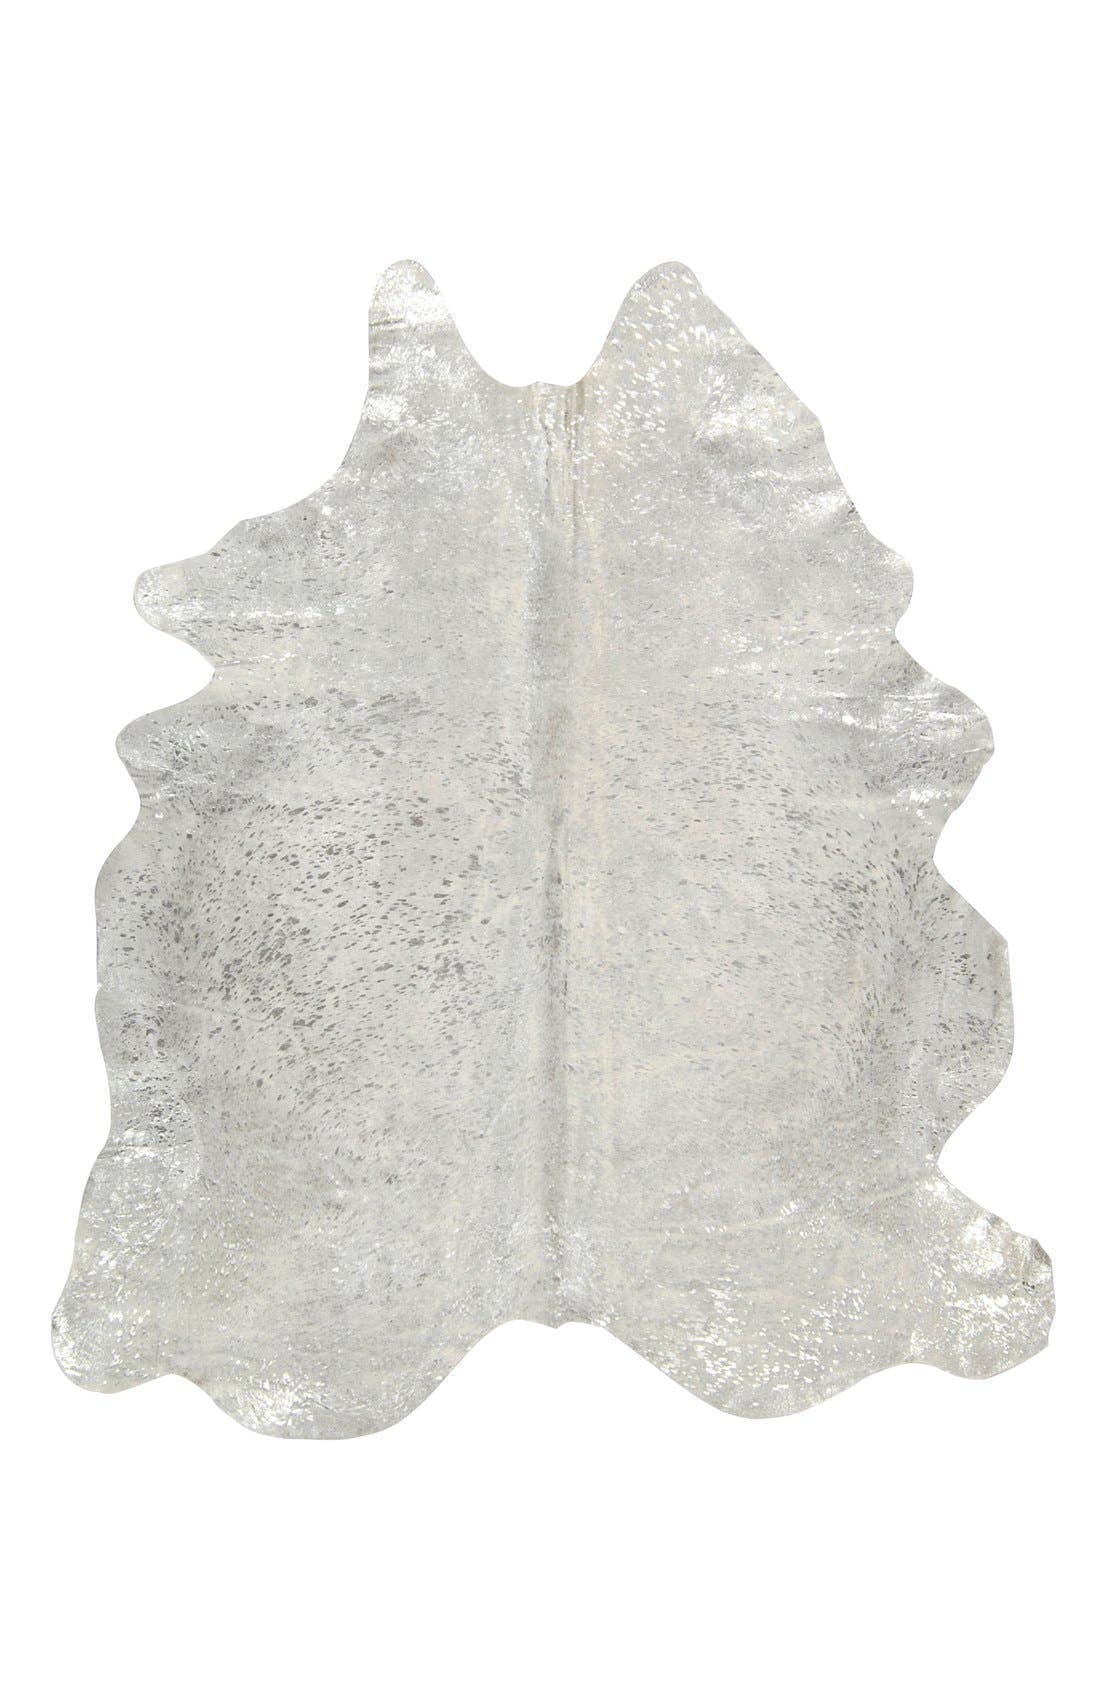 'Metallic Splash' Genuine Cowhide Rug,                             Main thumbnail 1, color,                             Silver